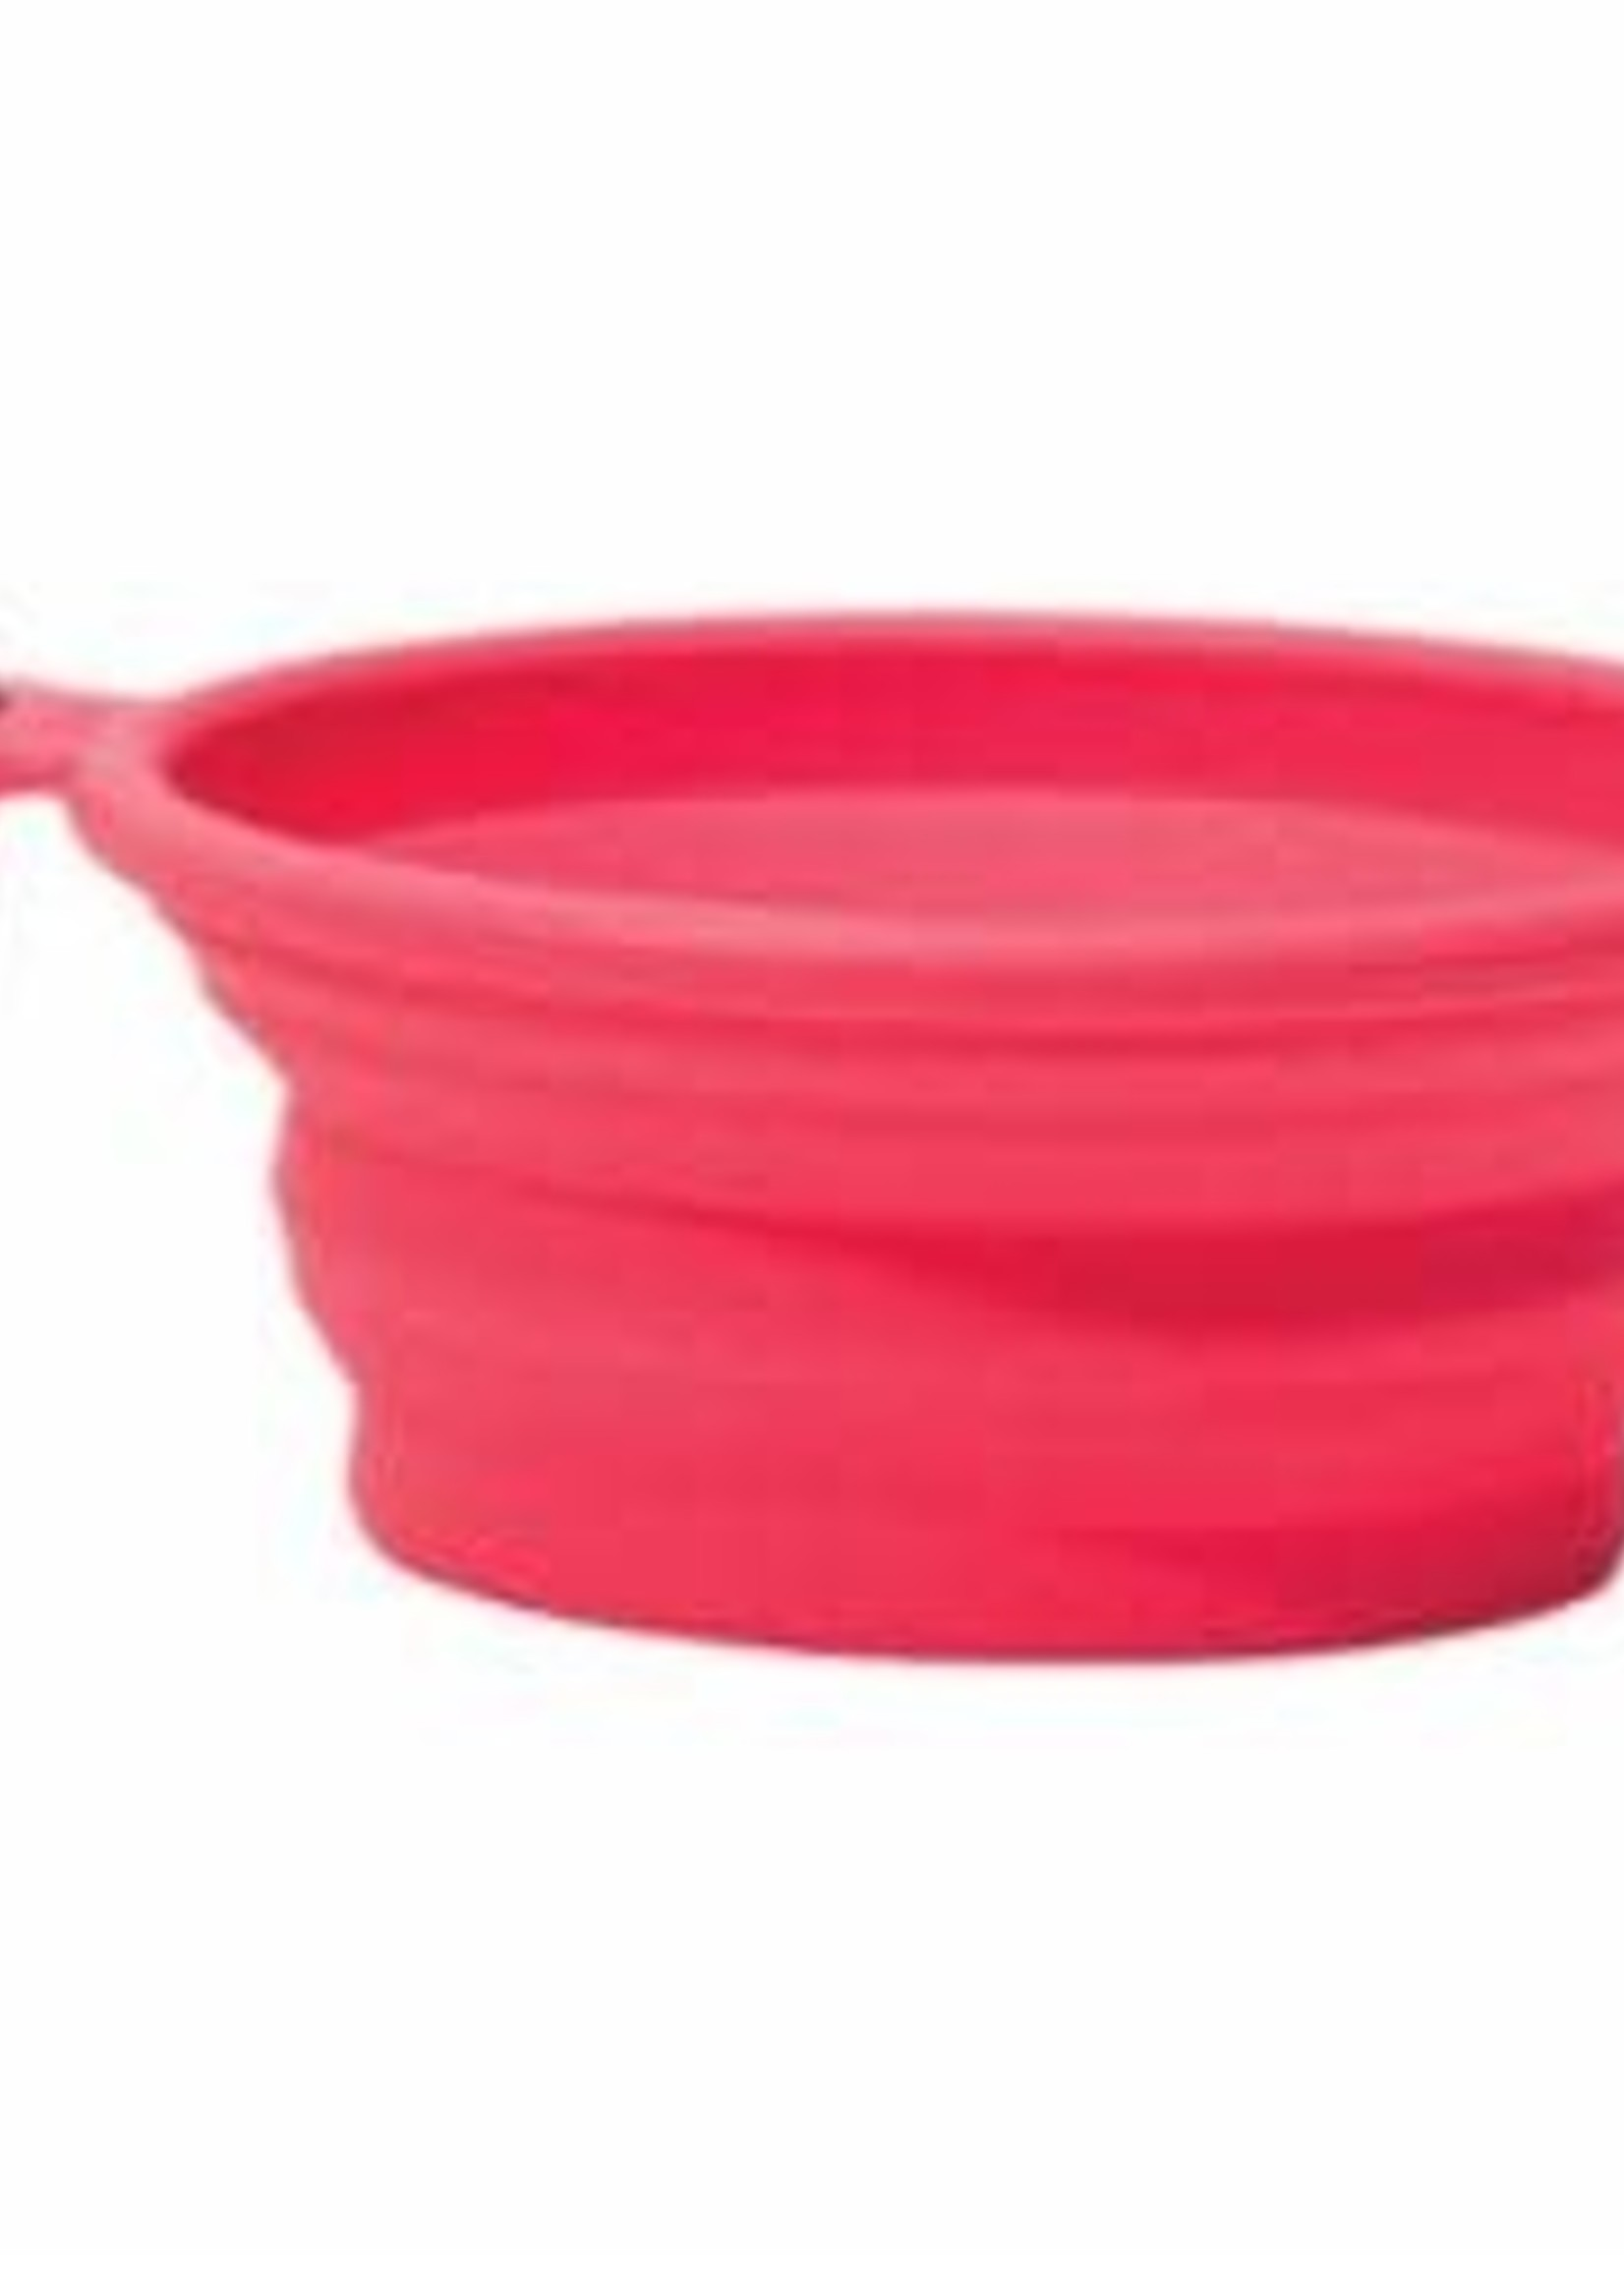 Messy Mutts Messy Mutts Collapsible Bowl Red 3cup